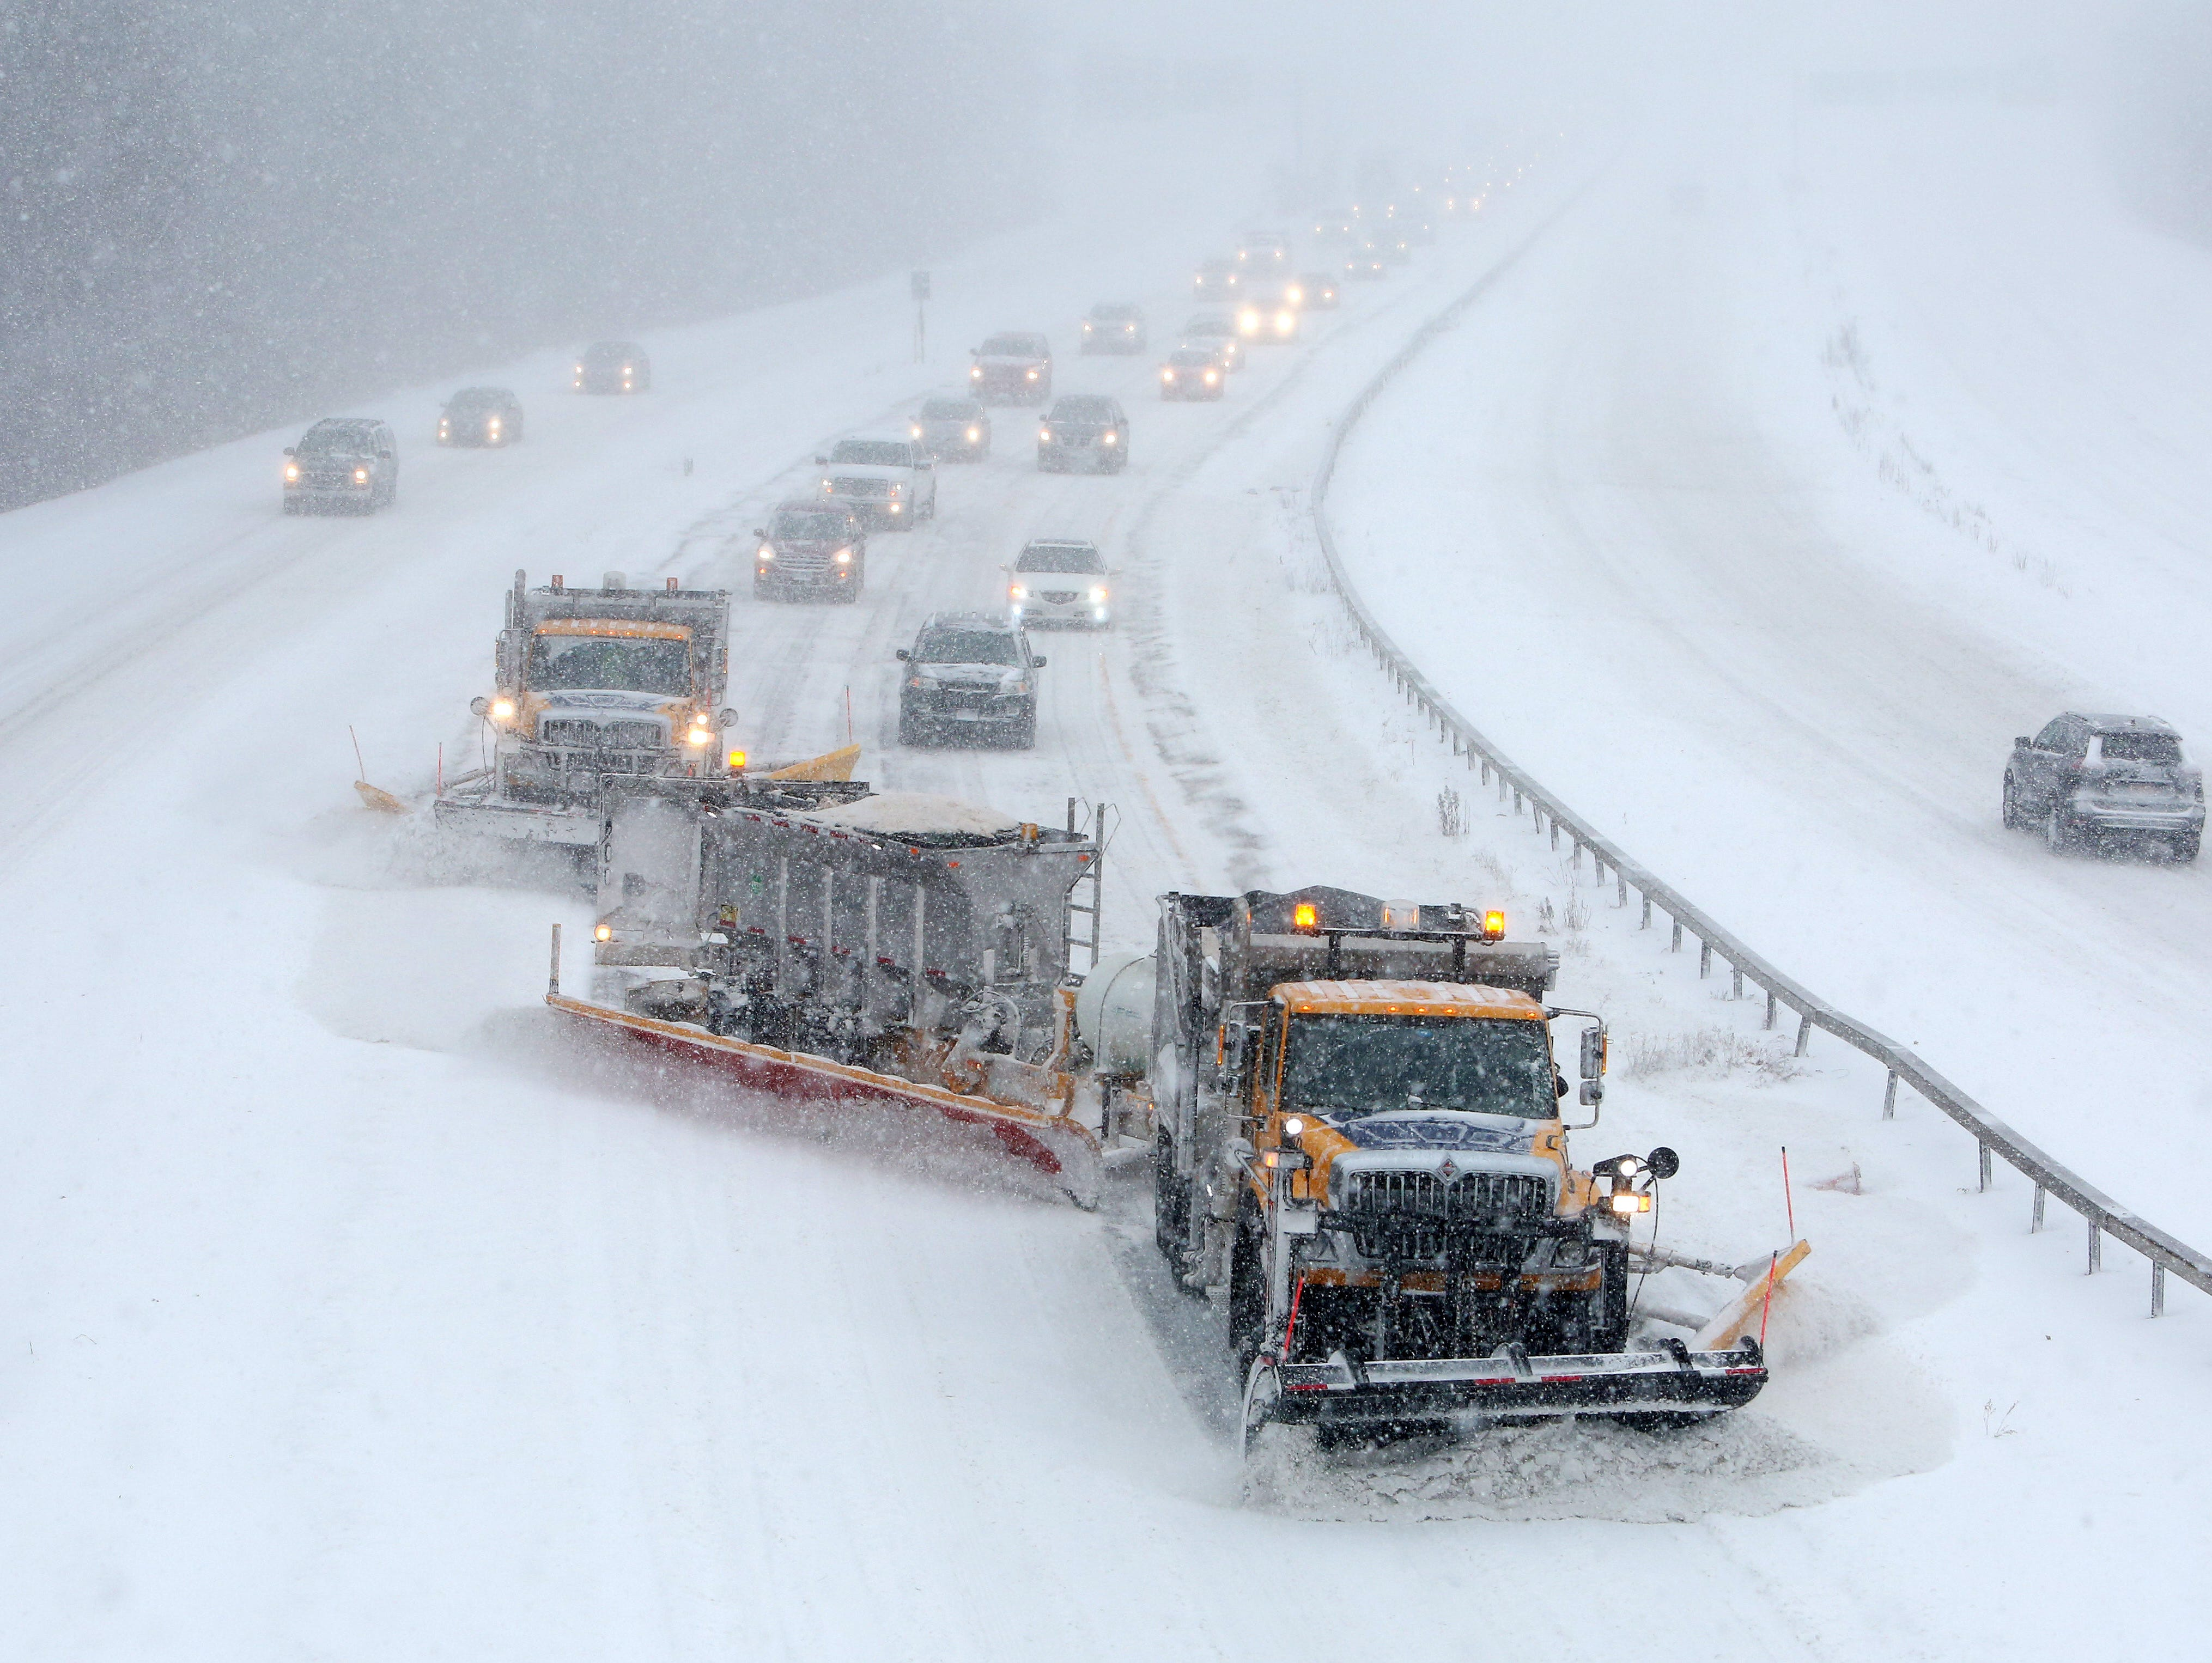 Traffic northbound on Interstate 684 in Katonah follows a group of snowplows during a steady snowfall Jan. 4, 2018.